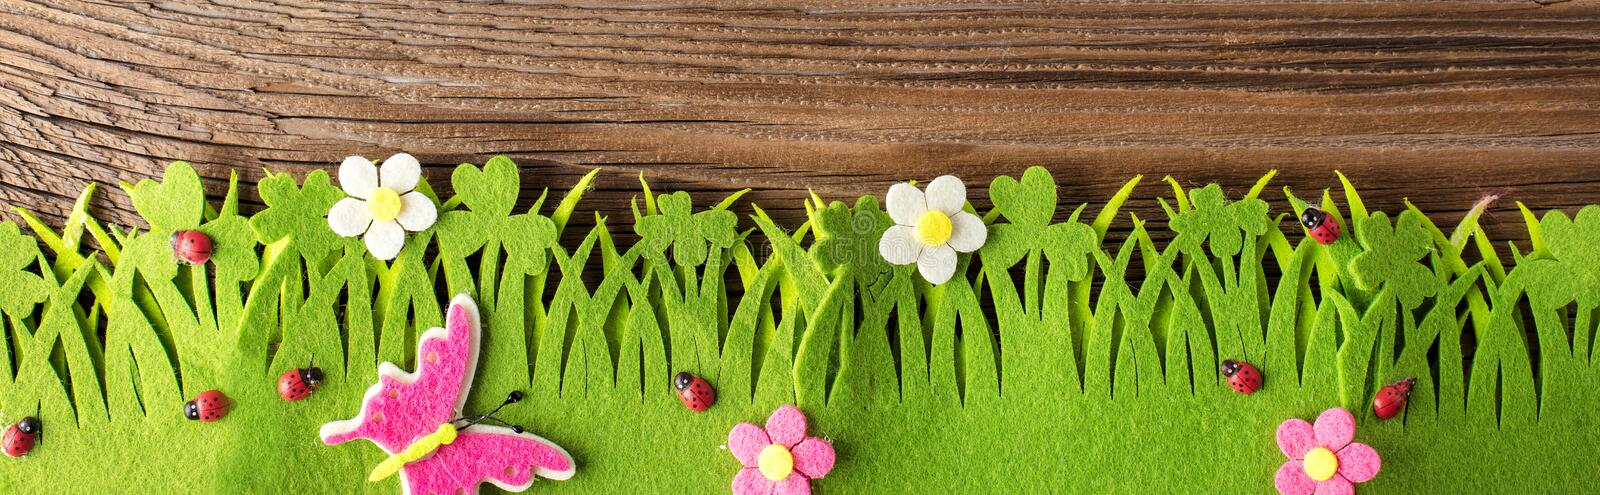 Spring or summer and grass field with wooden background. Spring or summer and grass field with wooden background royalty free stock image